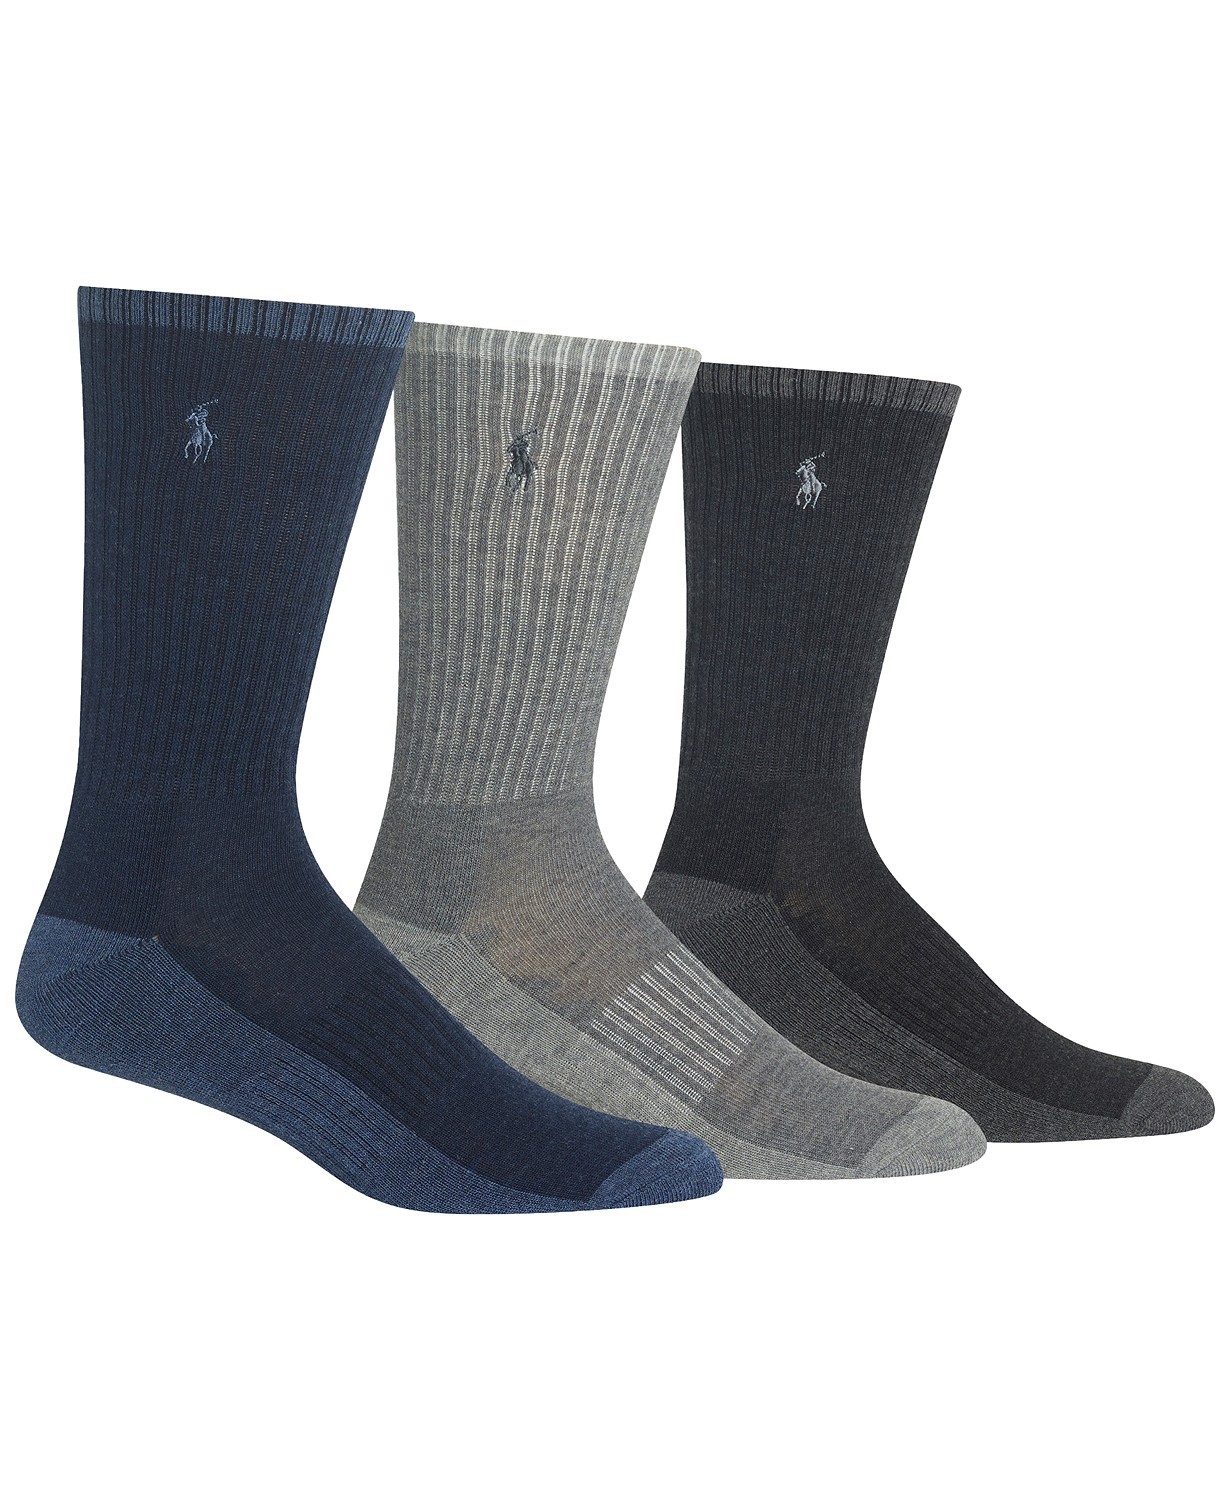 3-Pack Polo Ralph Lauren Heather Crew Socks